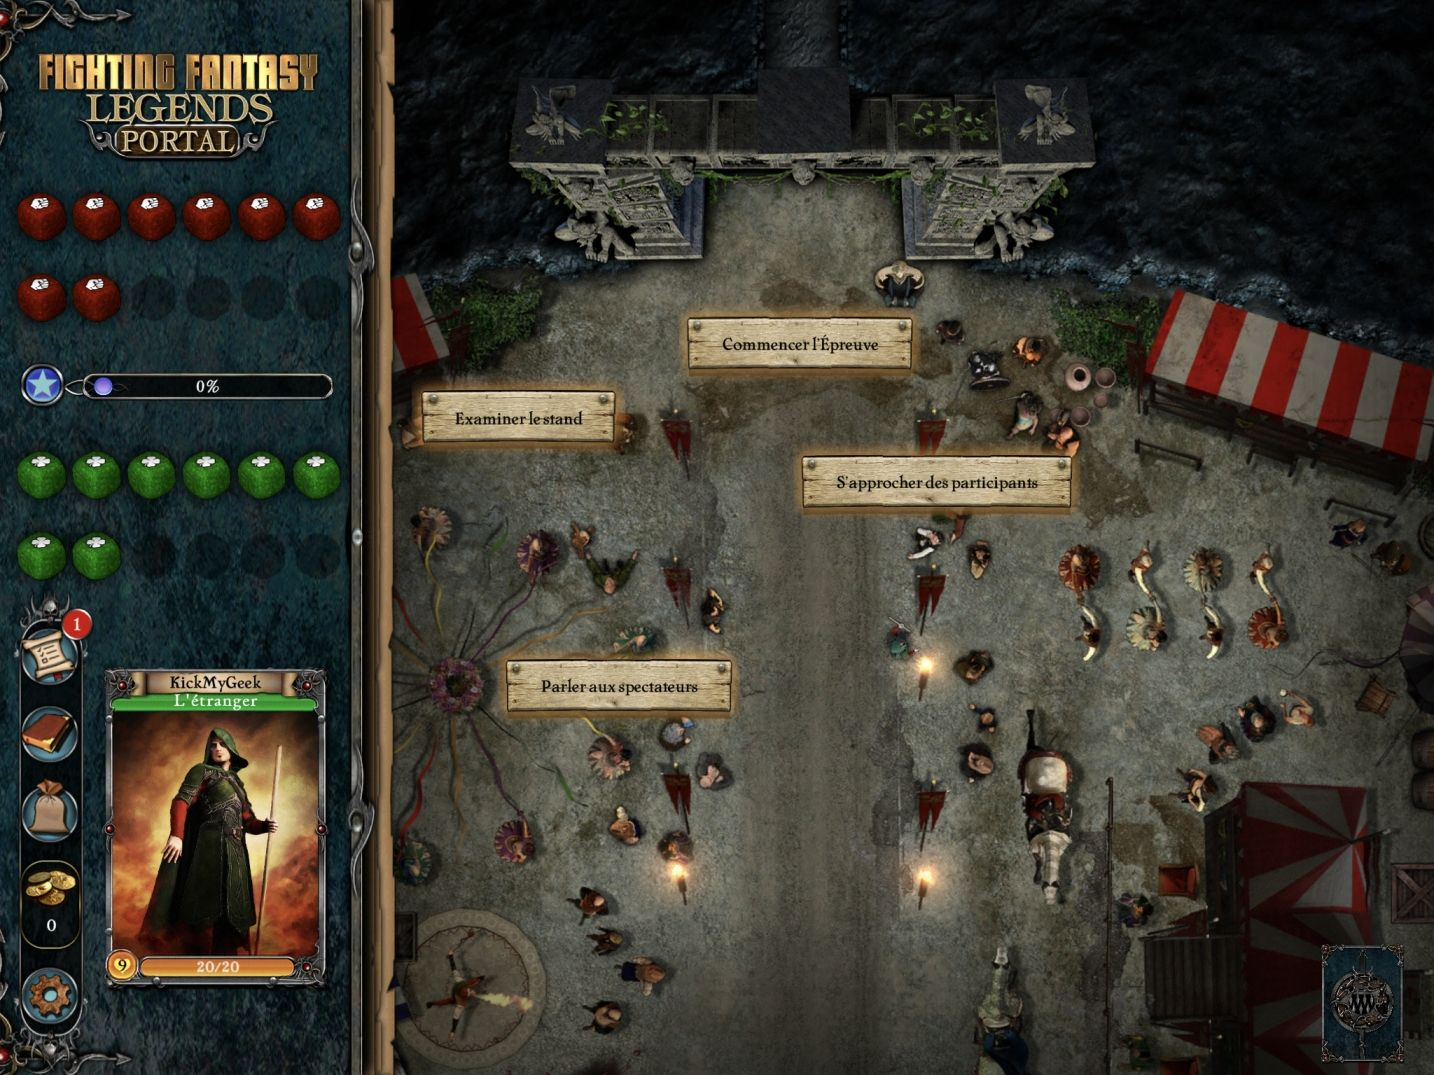 Fighting Fantasy Legends Portal (copie d'écran 4 sur iPhone / iPad)